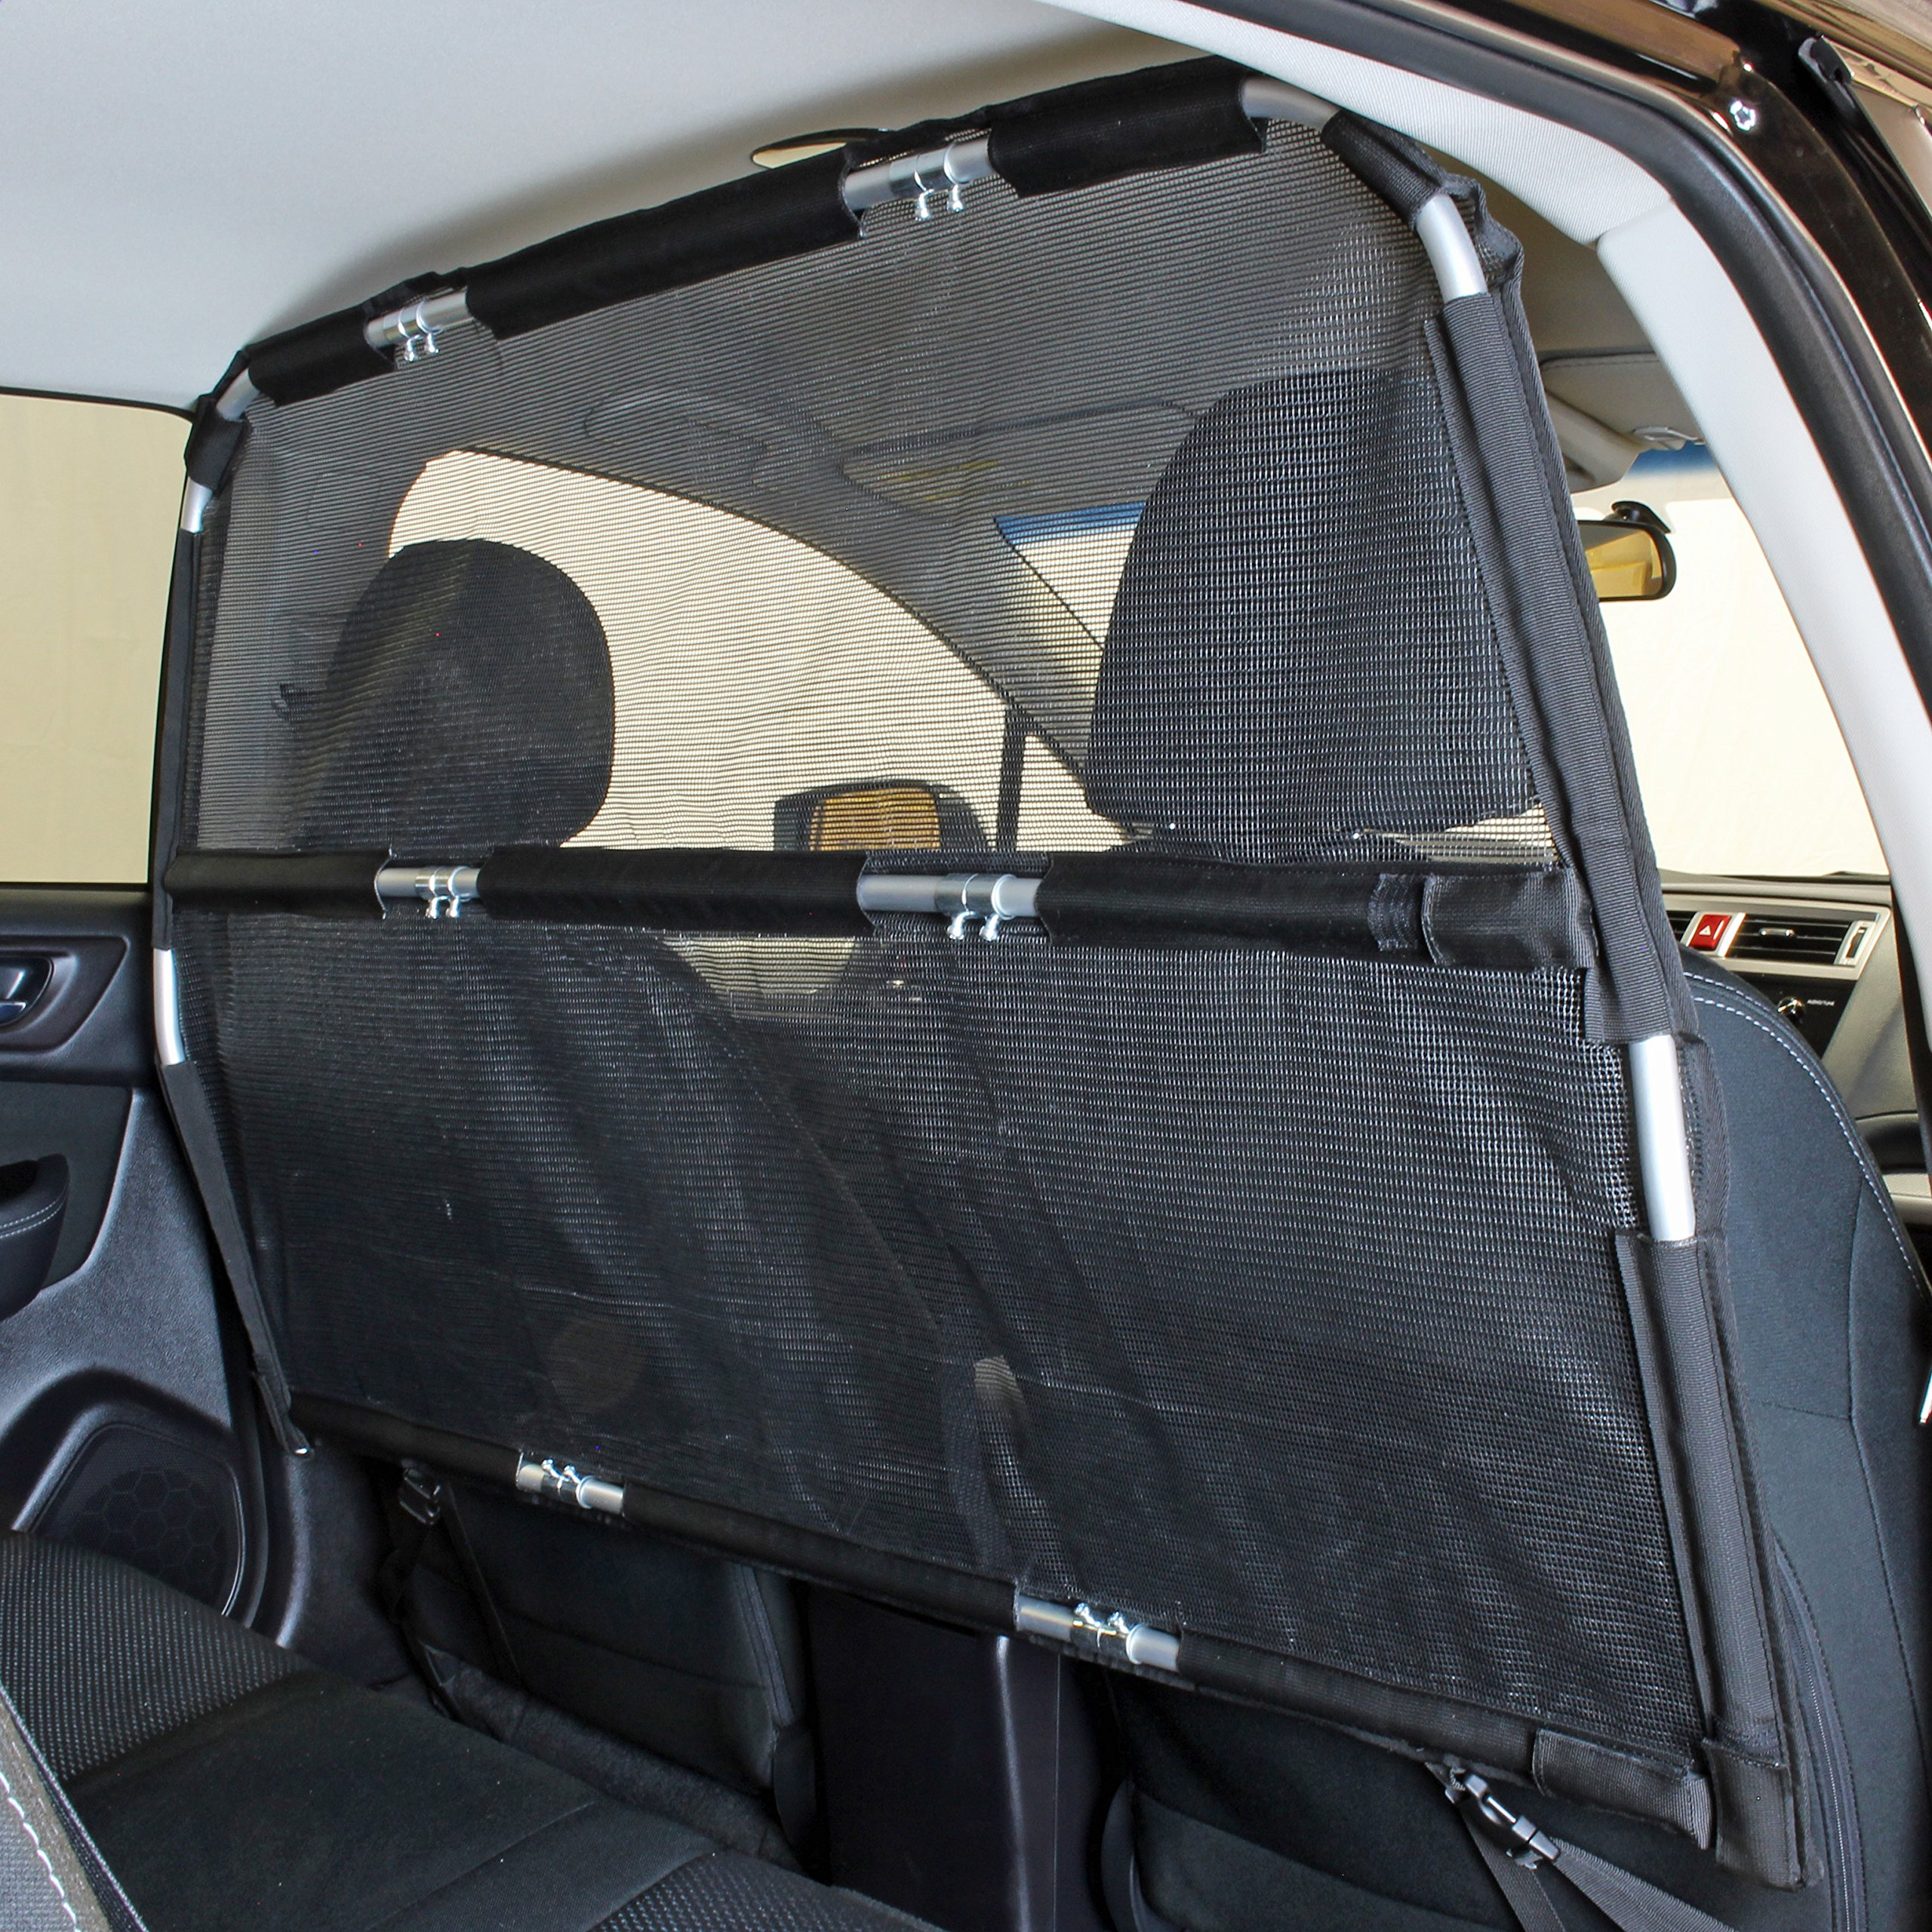 Bushwhacker® - Paws n Claws Deluxe Dog Barrier 50'' Wide - Ideal for Smaller Cars, Trucks, and SUV's - Patent Pending - Pet Restraint Car Backseat Divider Vehicle Gate Cargo Area by Bushwhacker